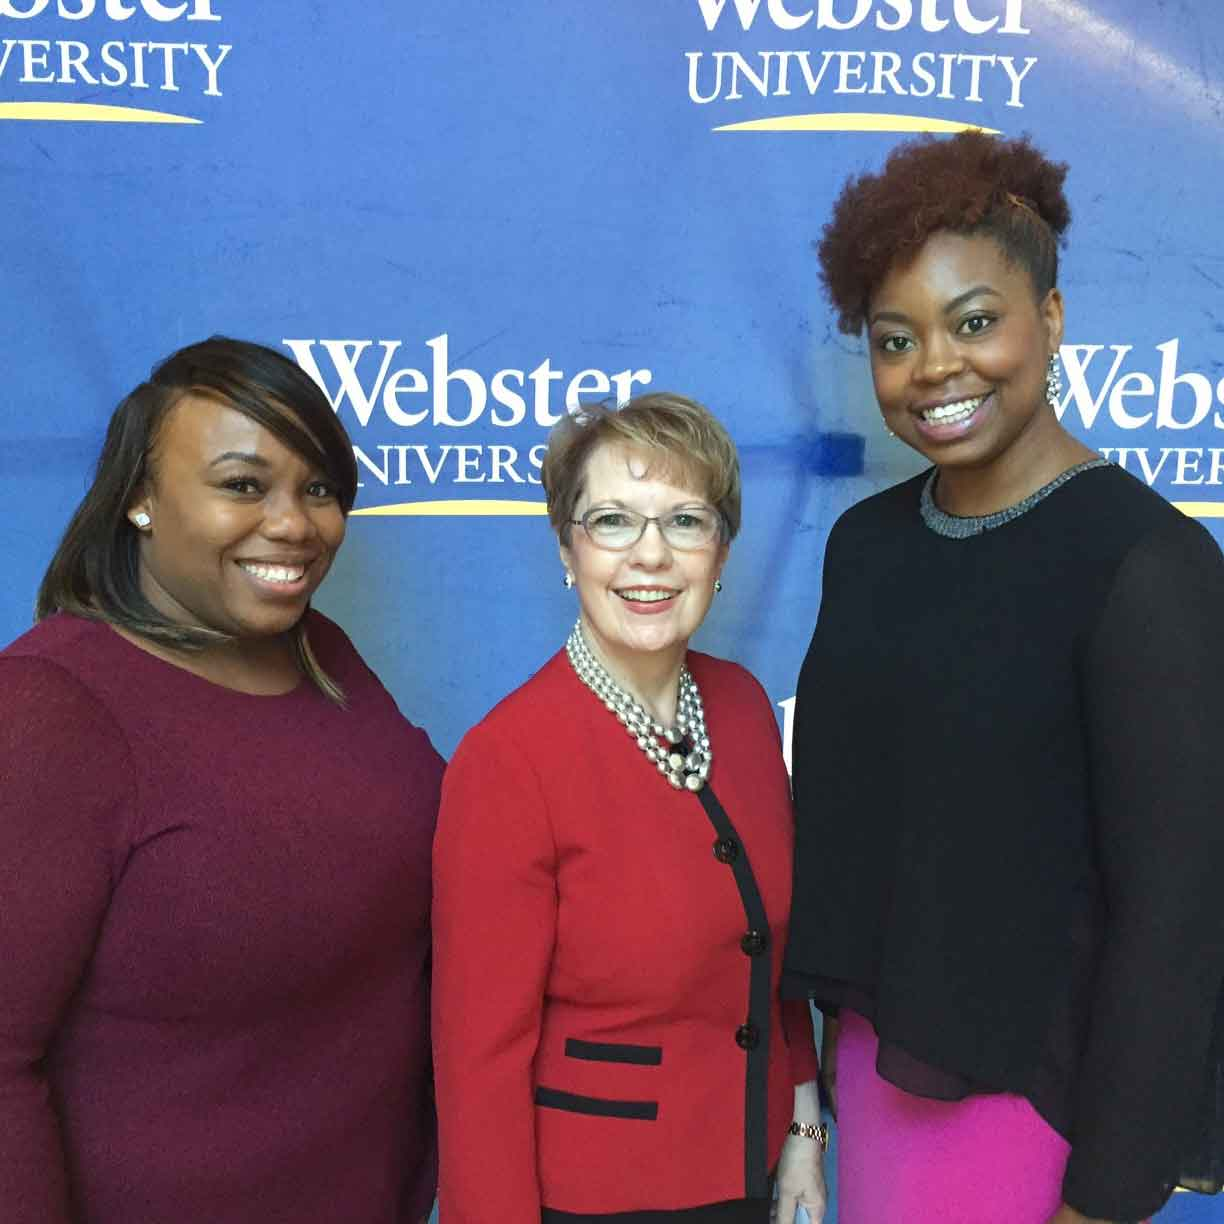 Three Webster Students Selected for Prestigious C200 Scholar Awards